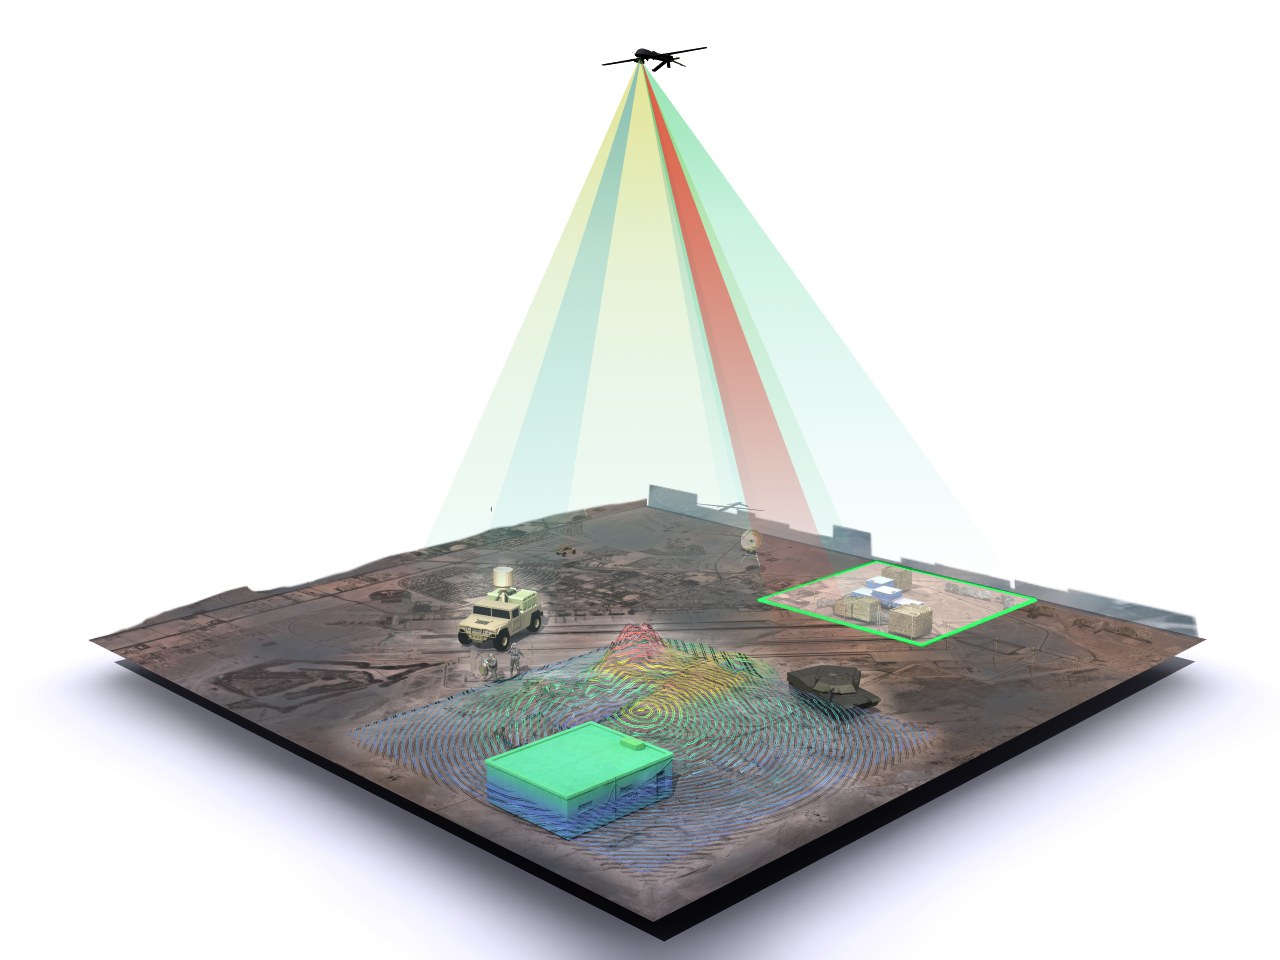 This artist's rendition depicts a single imaging sensor, in this case one that is aboard an unmanned aerial vehicle, simultaneously operating in three potential ReImagine modes—3D-mapping at the lower left, vehicle detection and tracking, and thermal scanning for industrial activity—in different regions of the same field of view. Today a single camera cannot do all of these things. (DARPA)